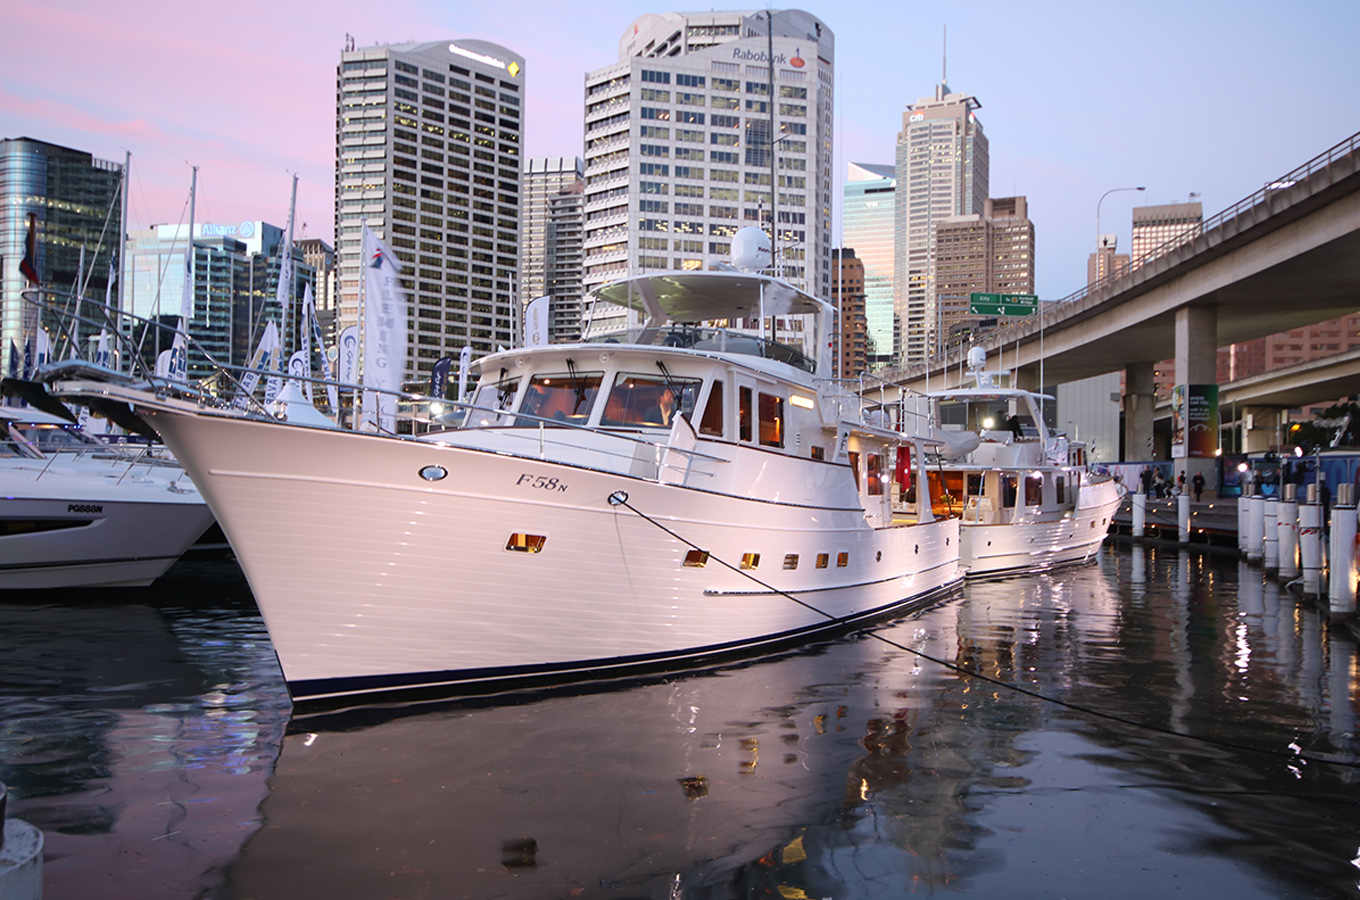 The Sydney International Boat Show